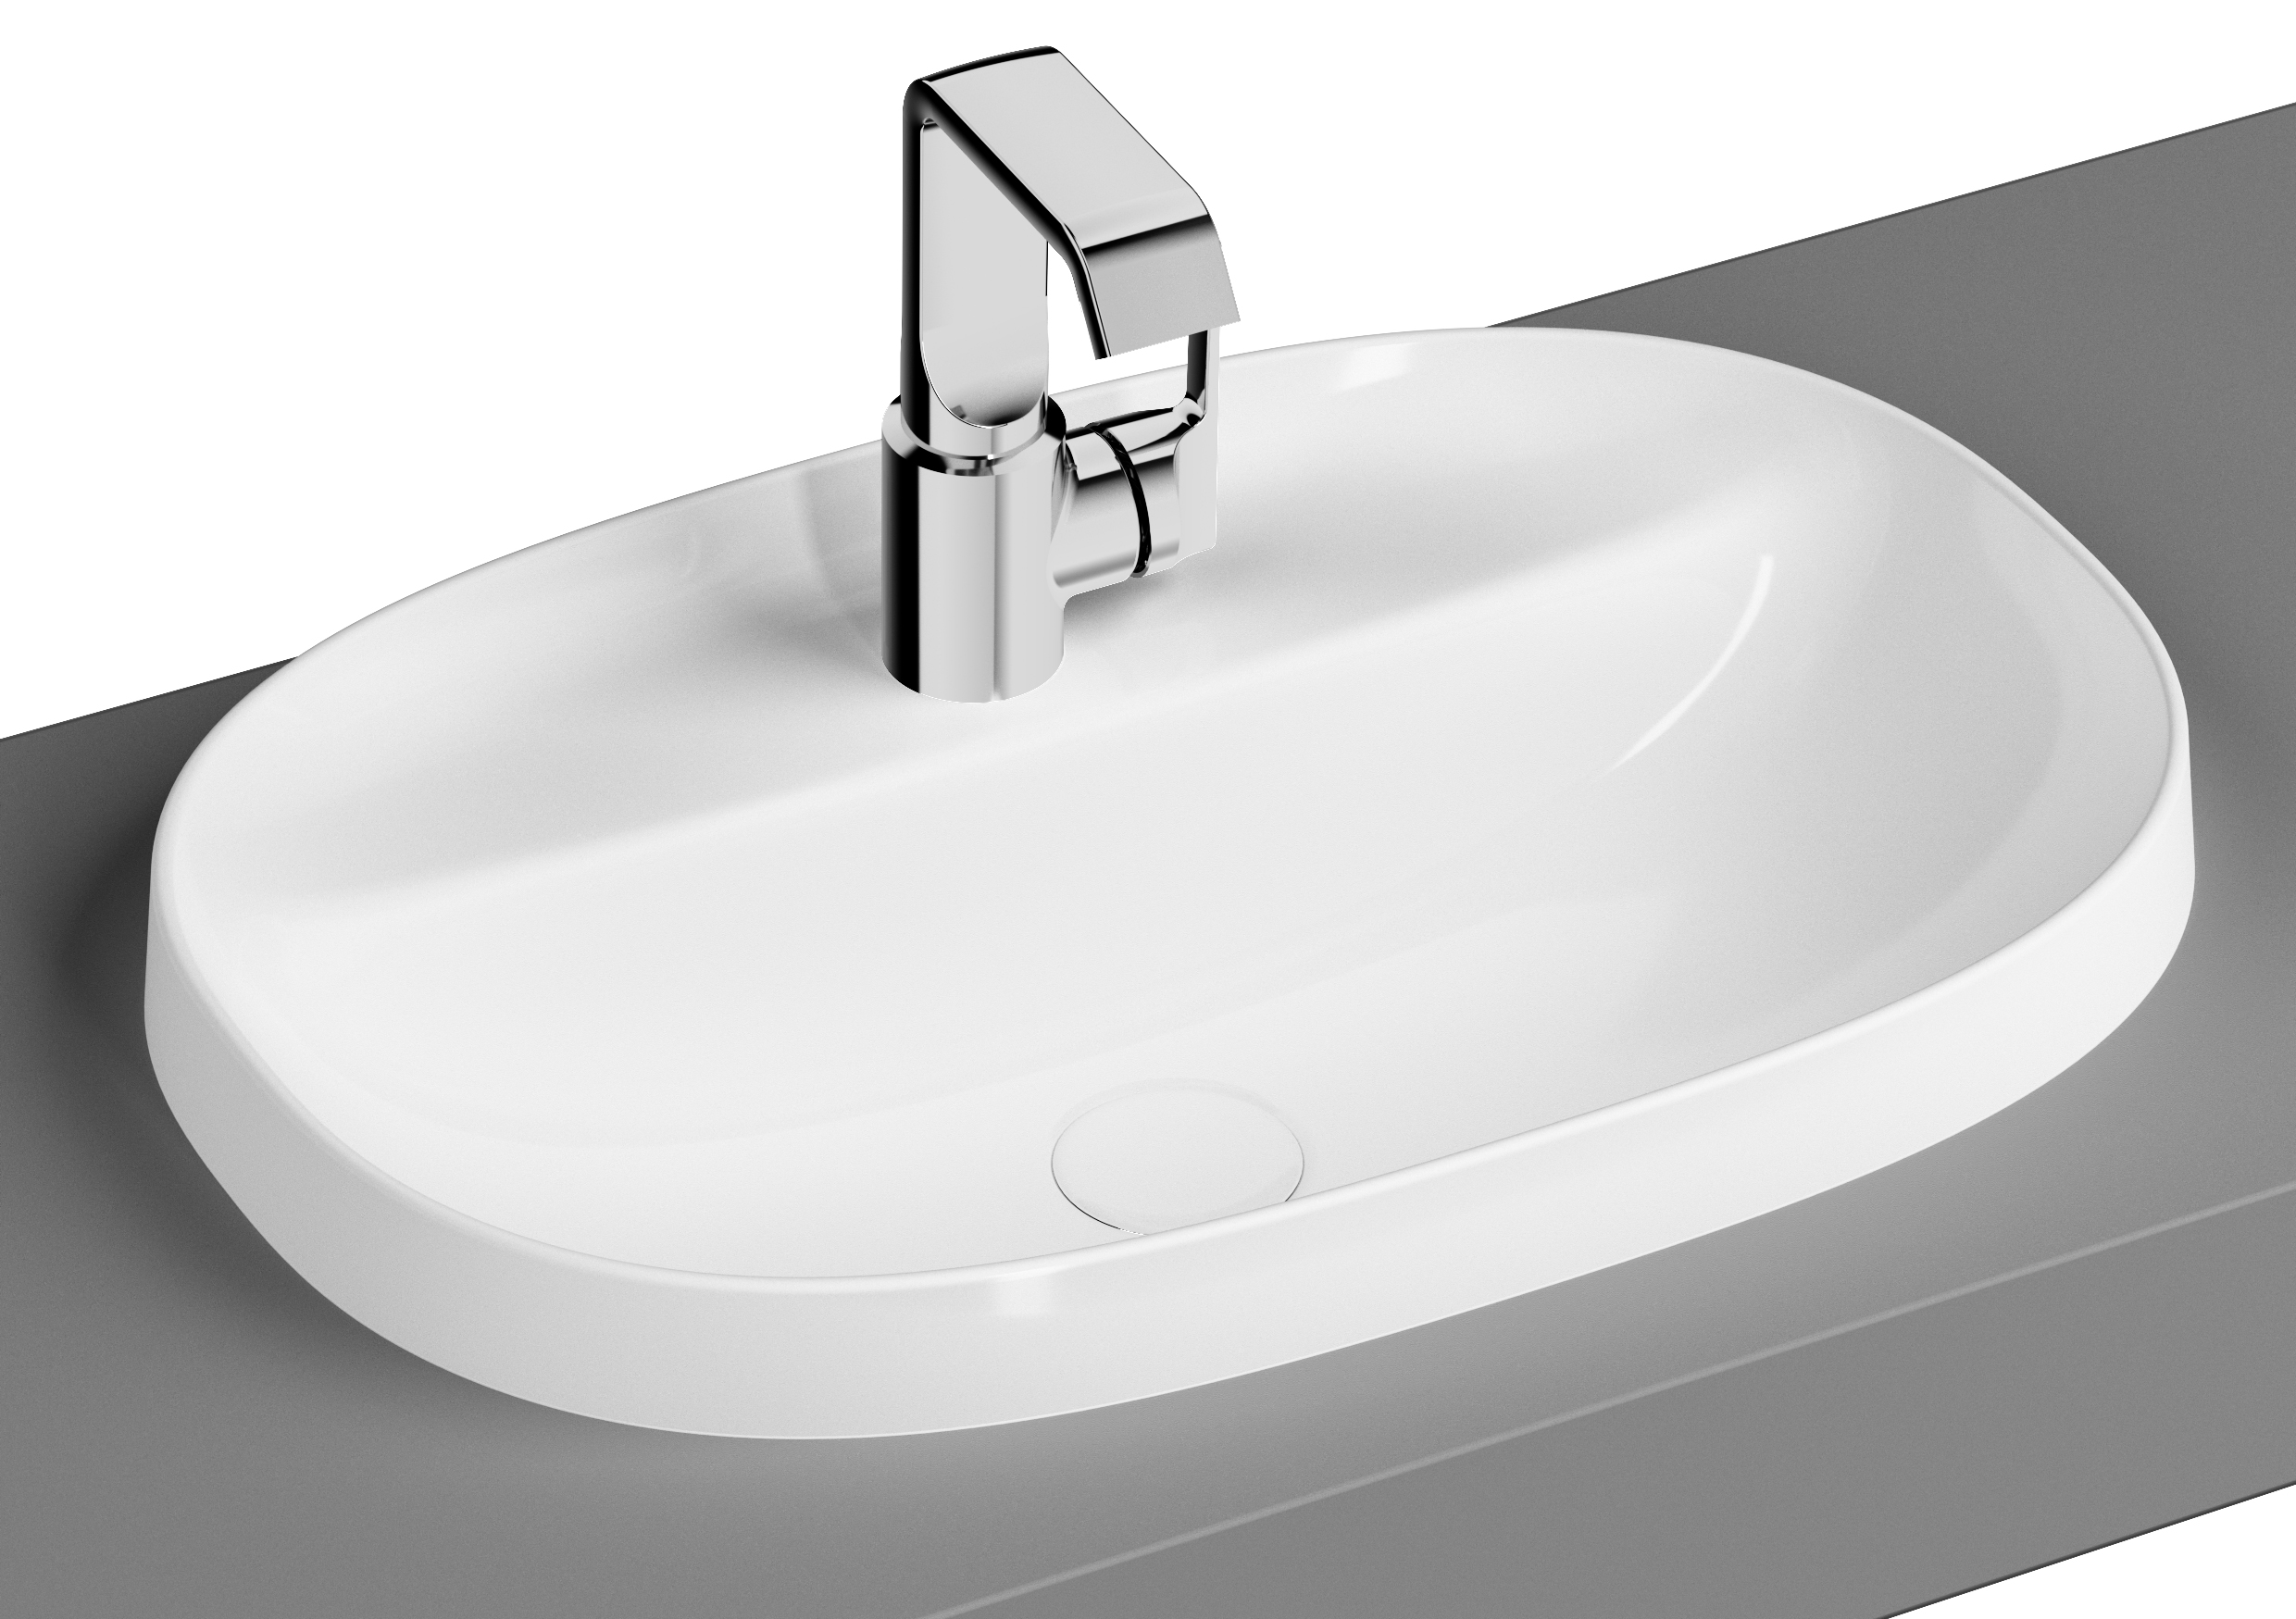 click on Oval Countertop Basin image to enlarge